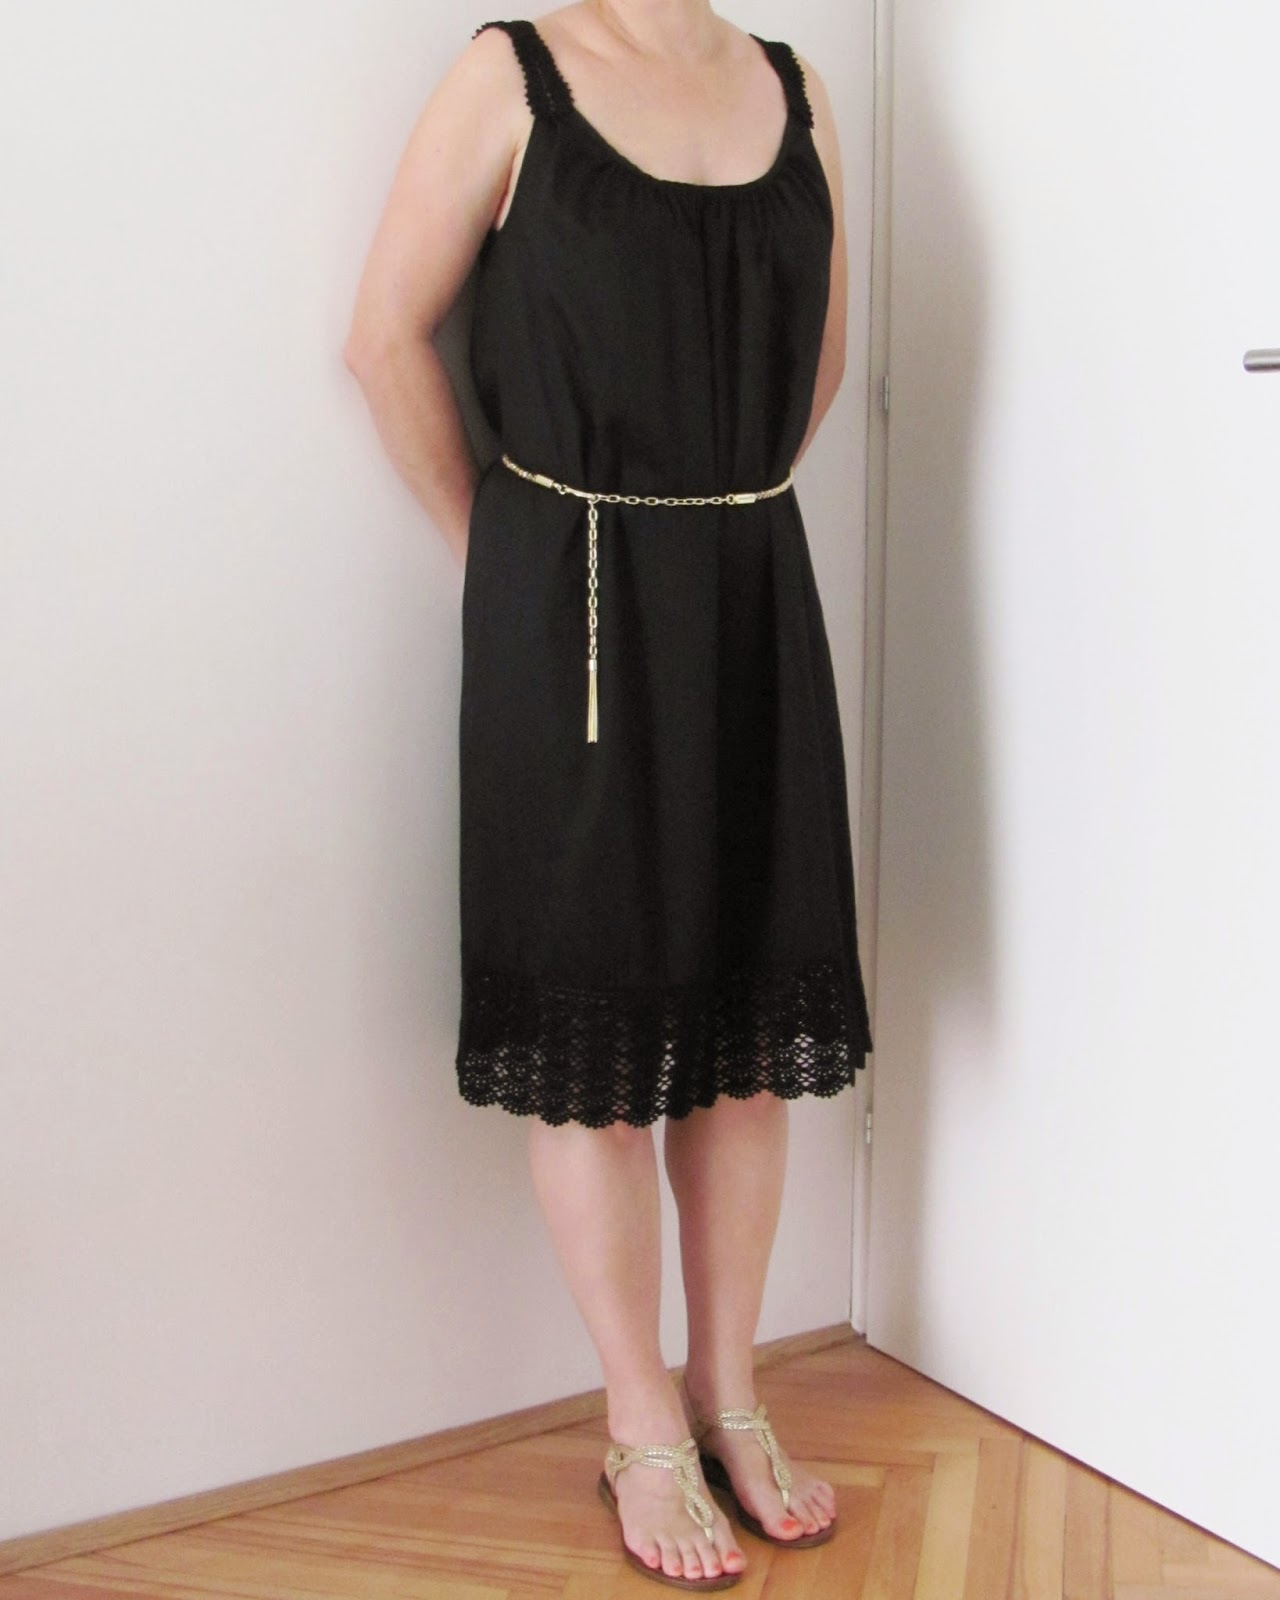 http://ladylinaland.blogspot.com/2013/09/little-black-dress.html